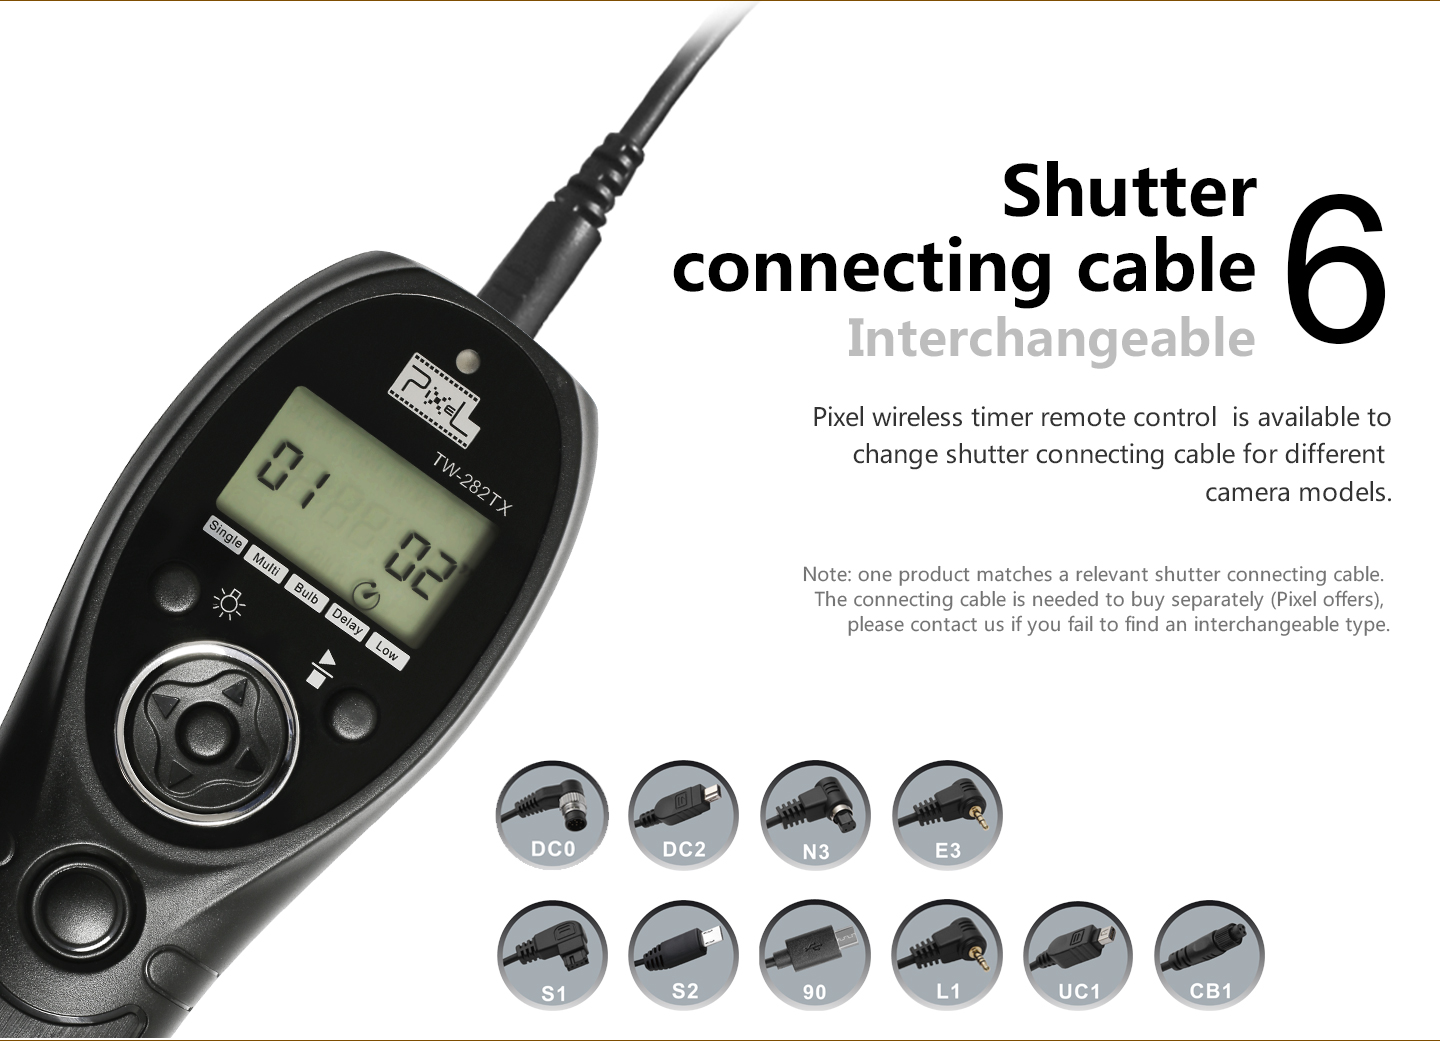 Shutter connecting cable